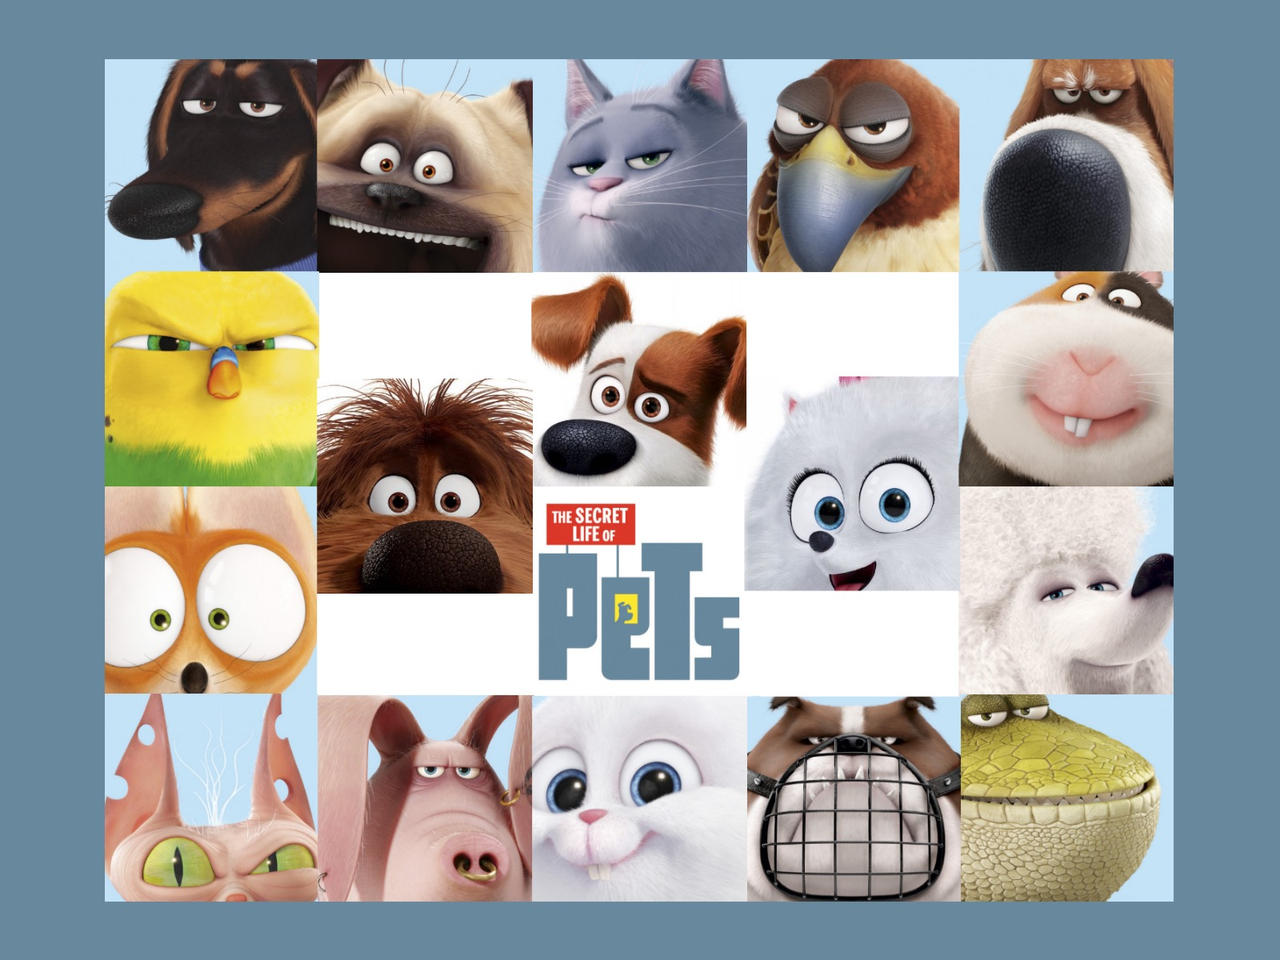 The Secret Life Of Pets Wallpaper: The Secret Life Of Pets Wallpaper By Peachmog On DeviantArt